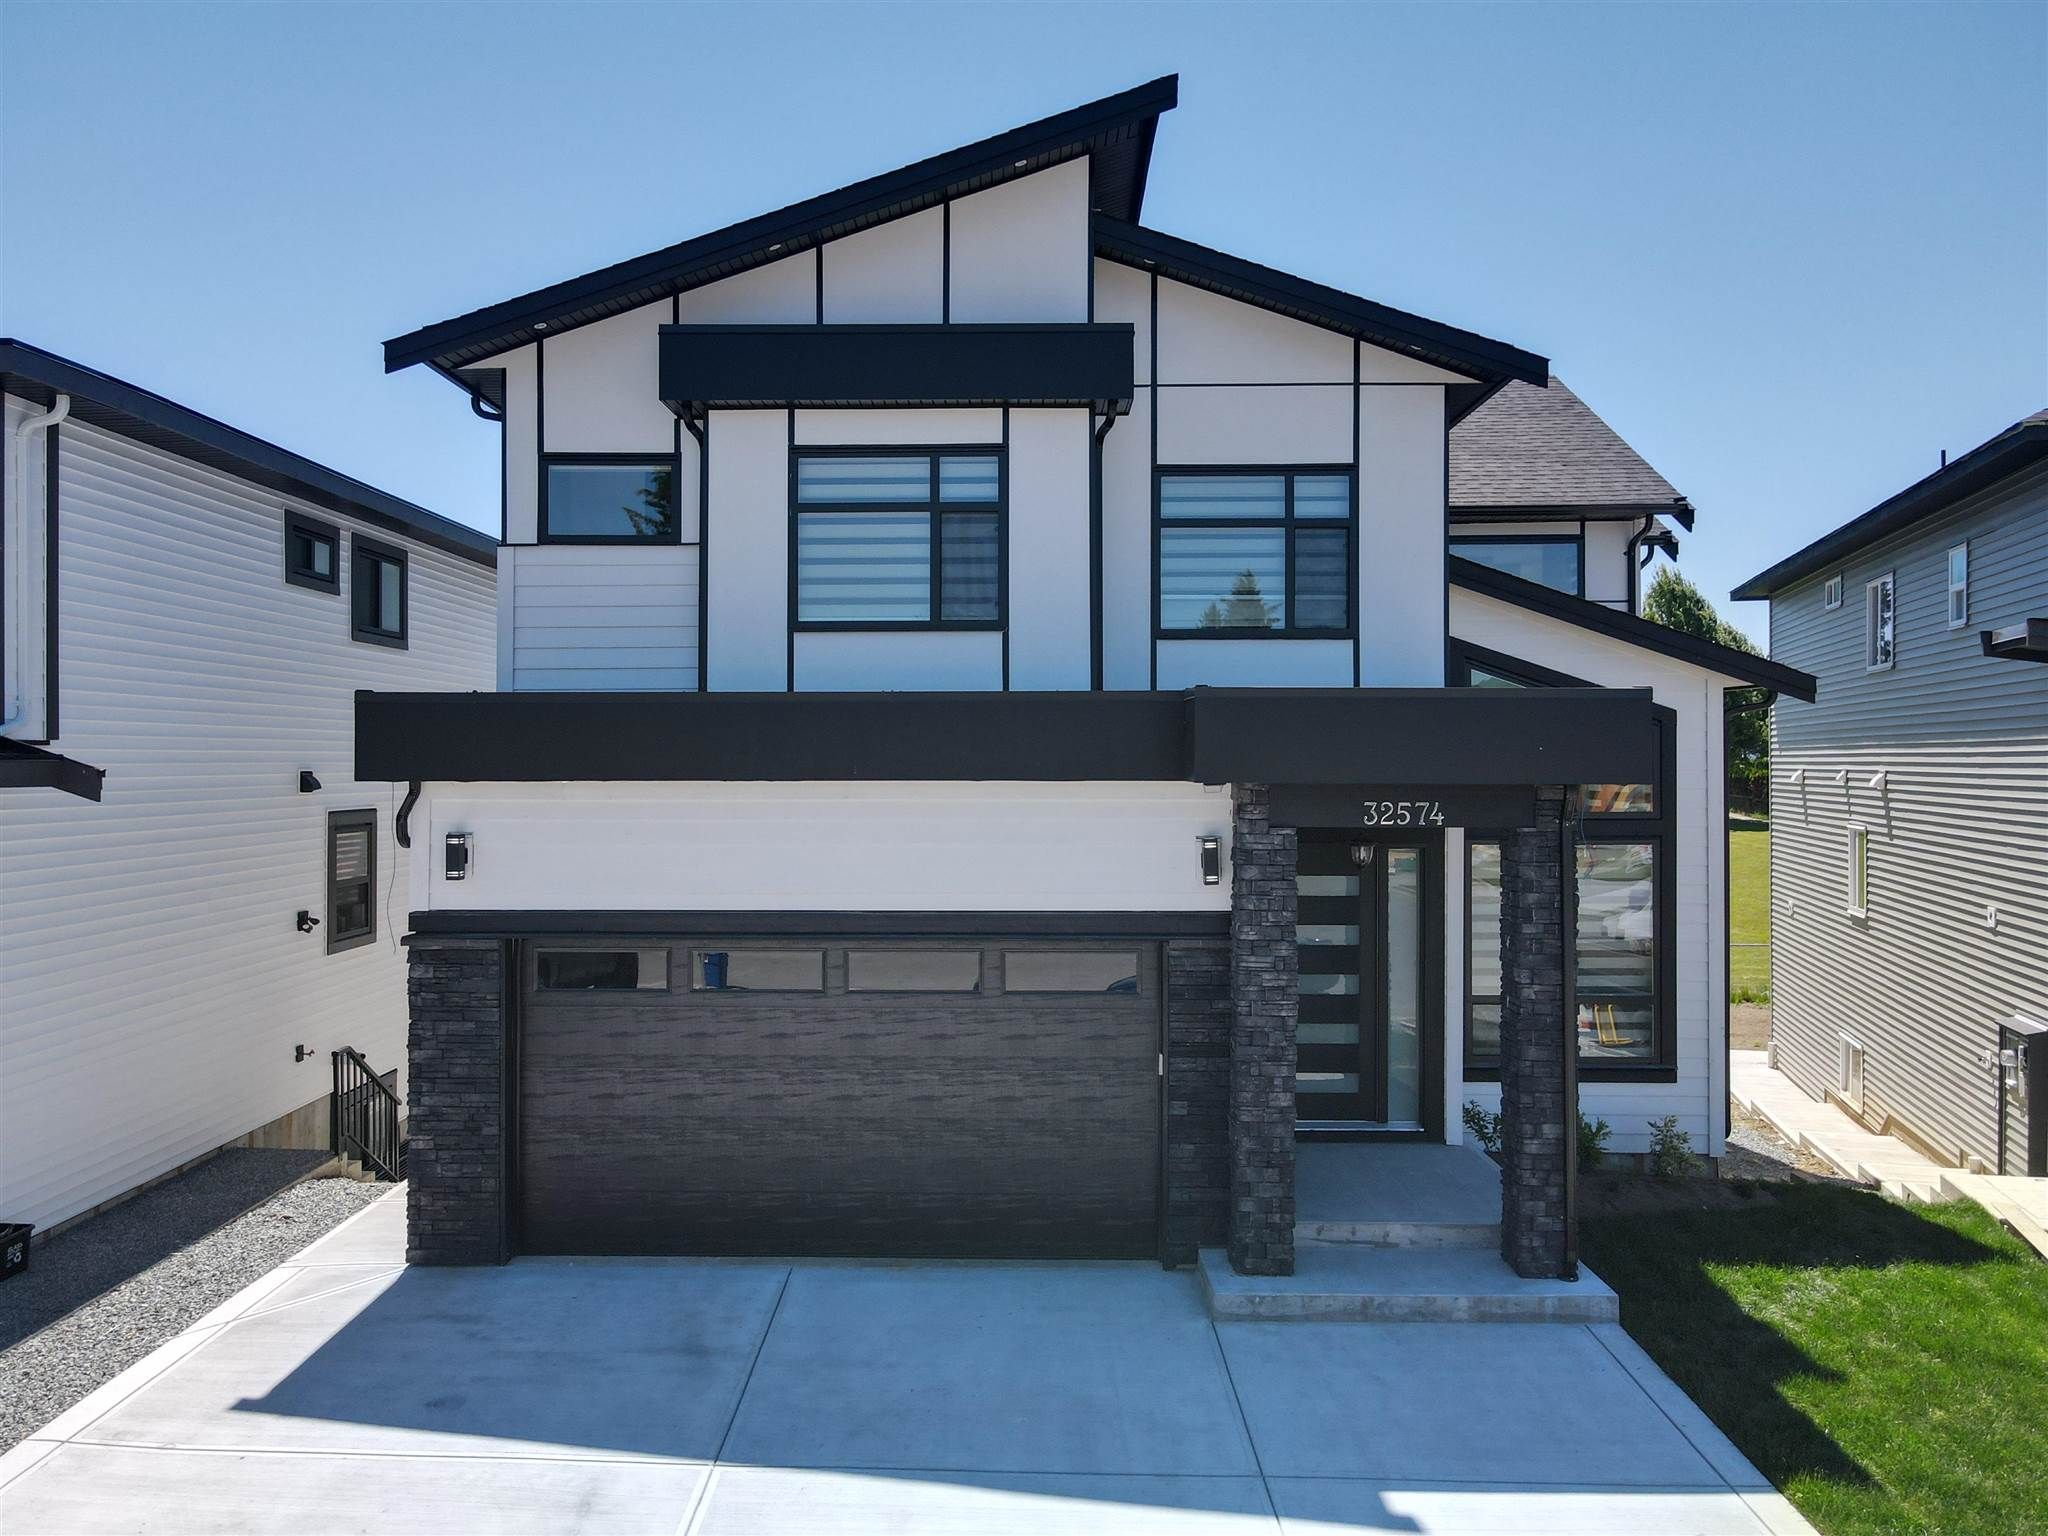 Main Photo: 32574 LISSIMORE Avenue in Mission: Mission BC House for sale : MLS®# R2596422